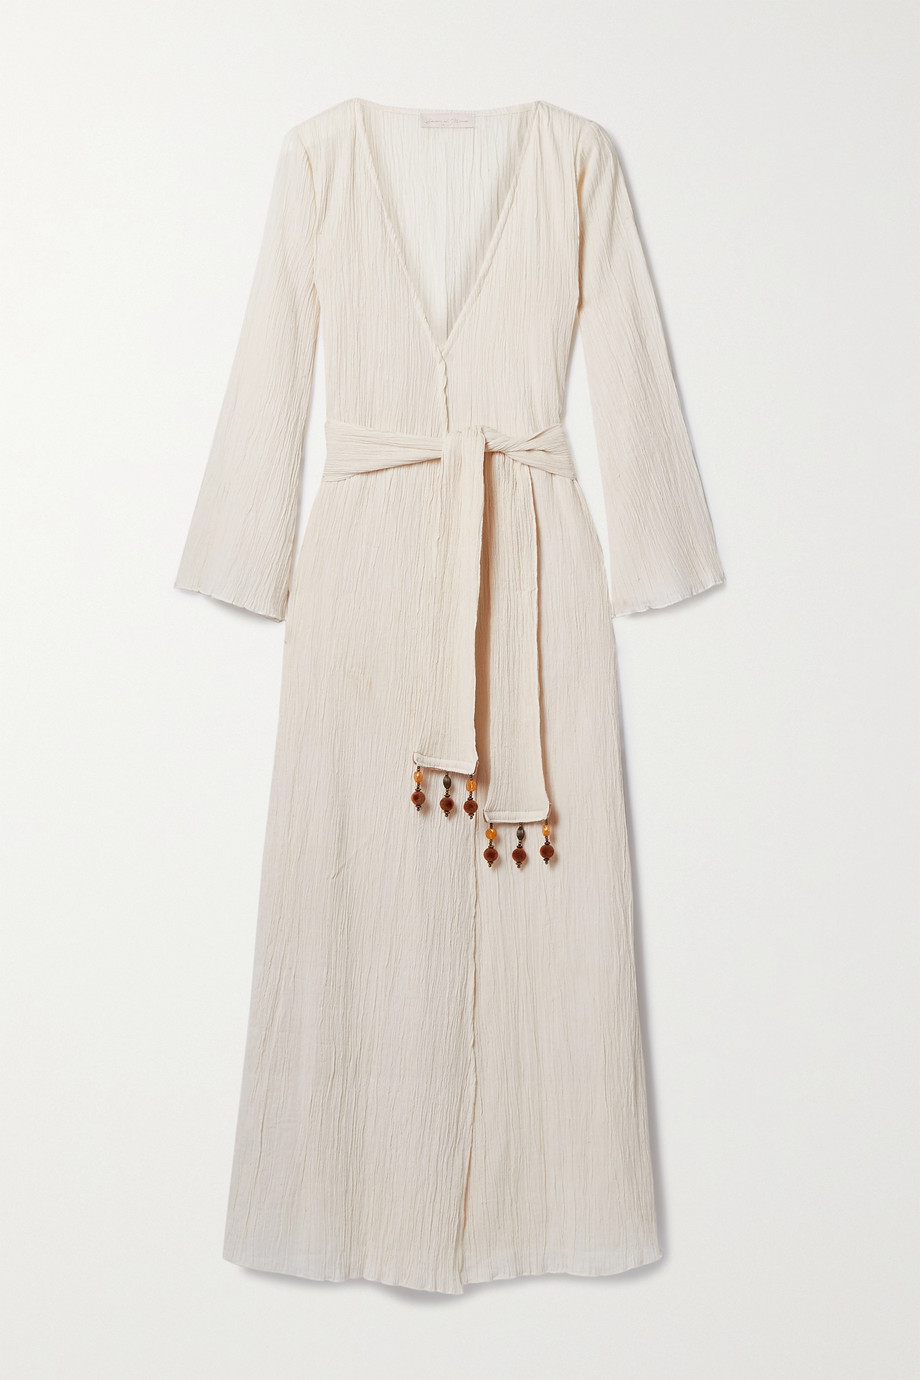 Savannah Morrow The Label + NET SUSTAIN Amity embellished belted crinkled organic cotton-gauze wrap dress